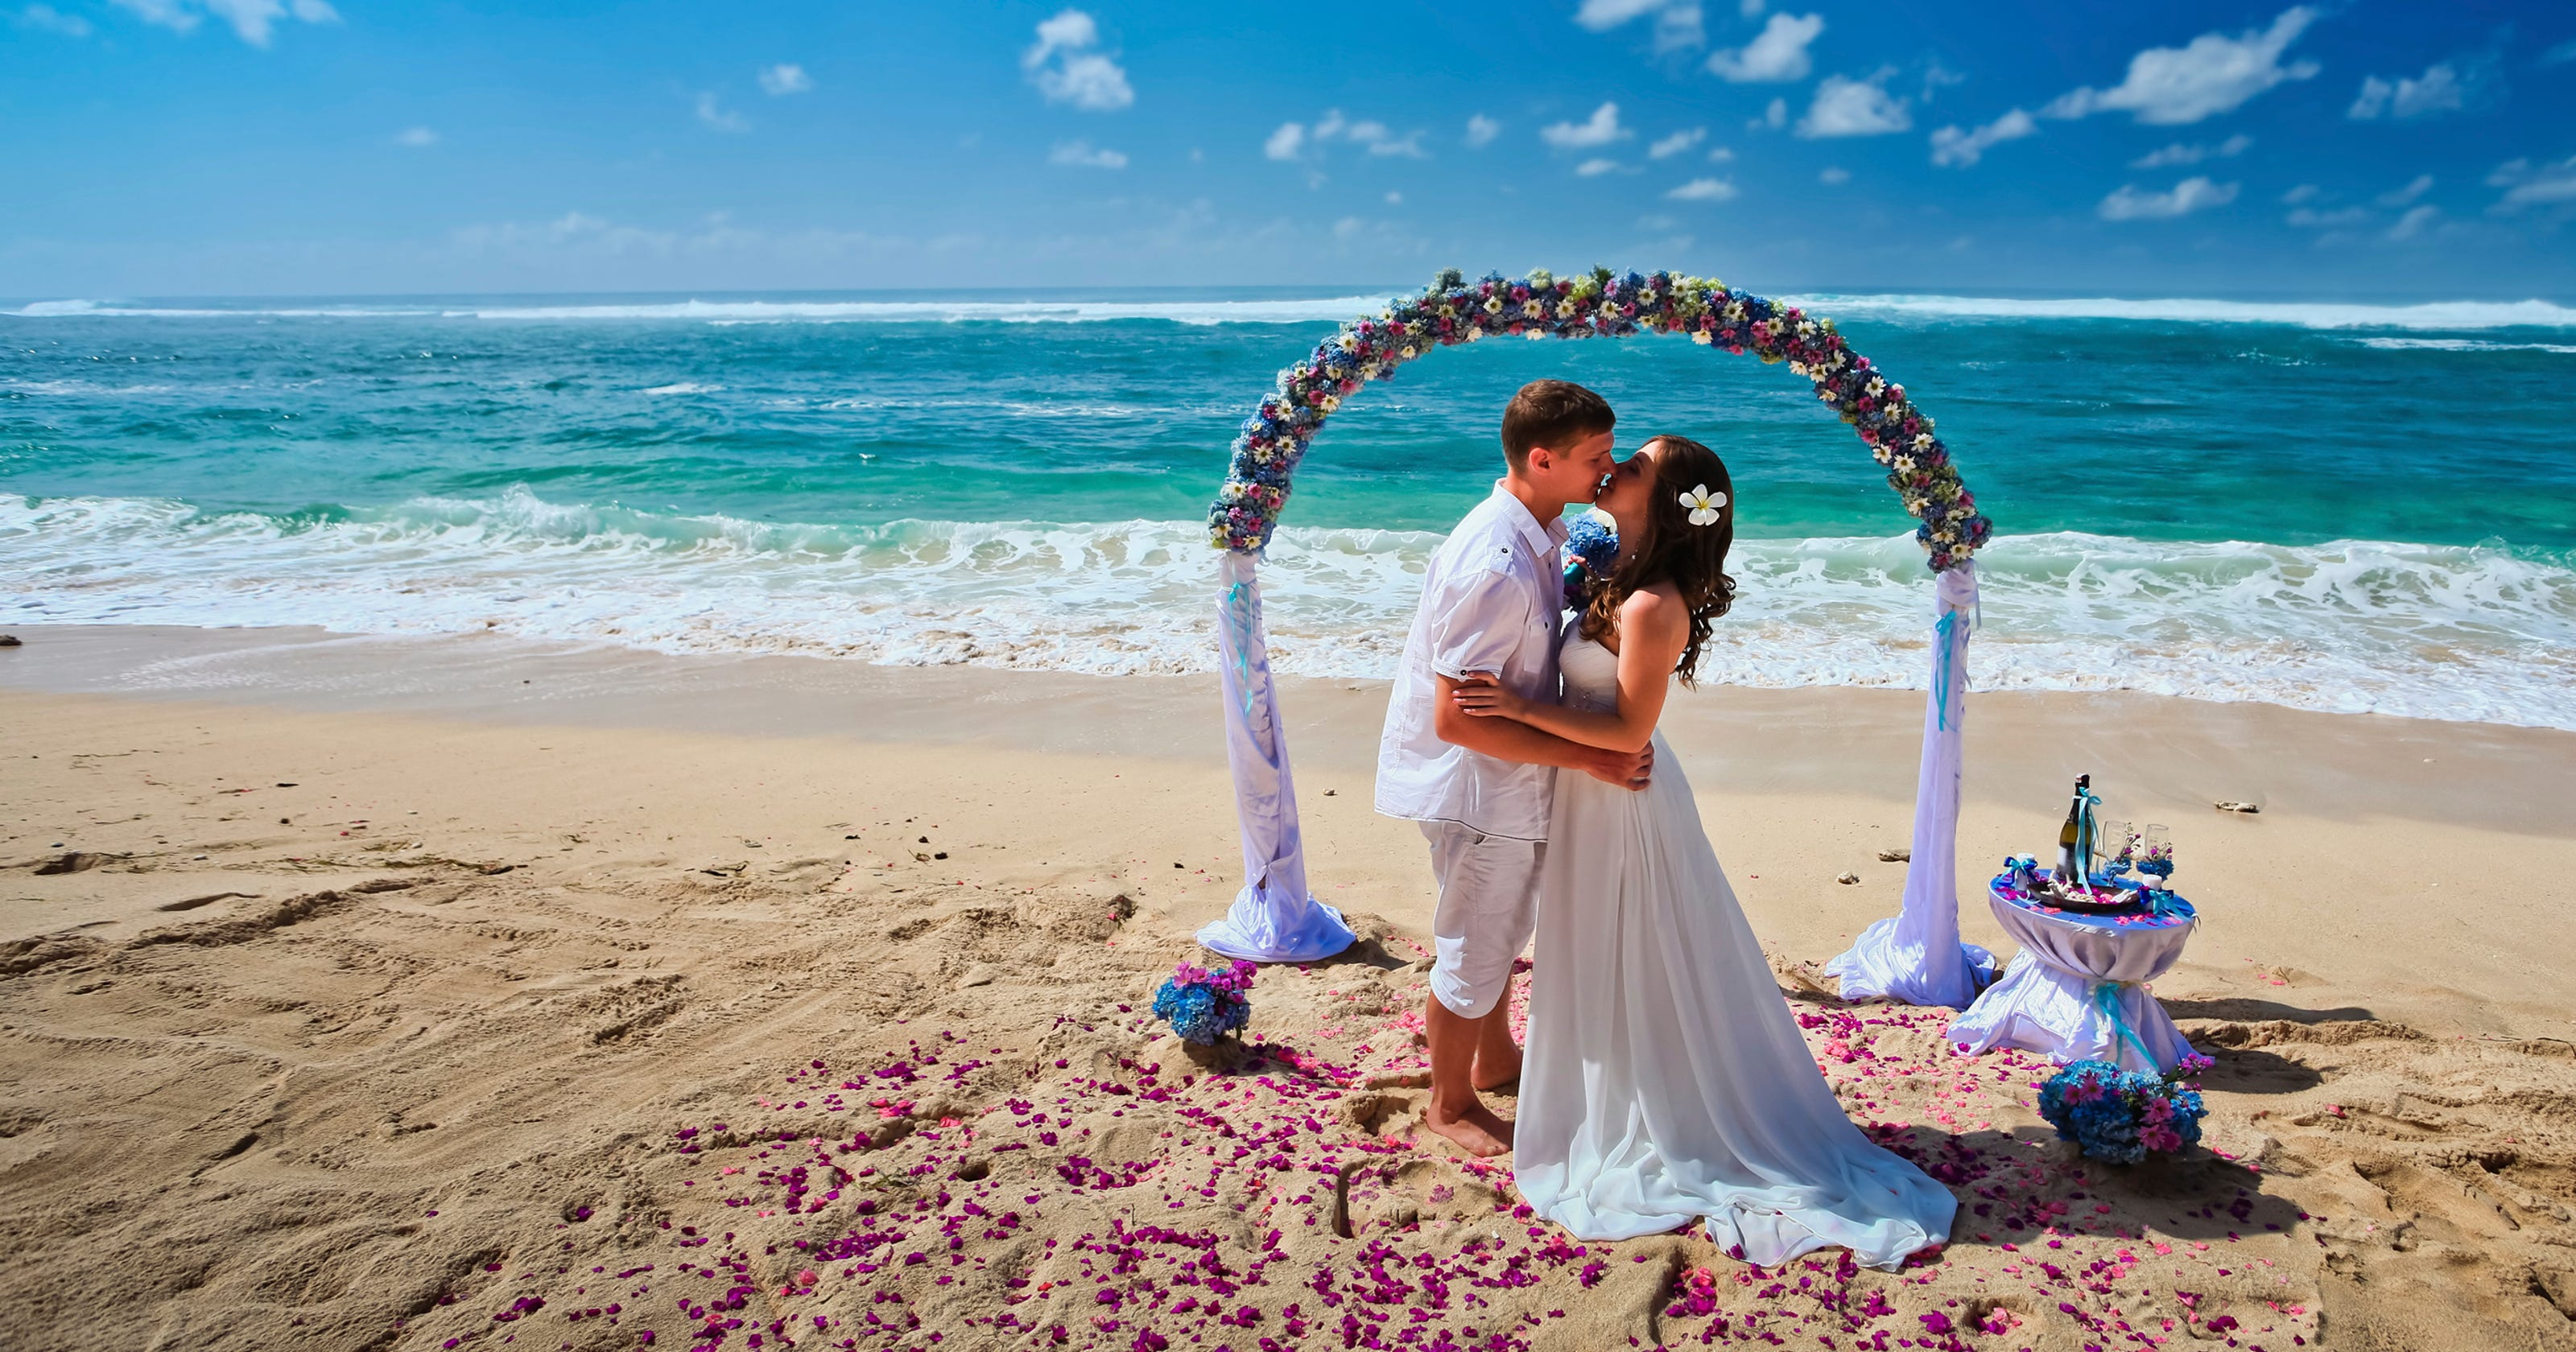 Destination weddings: The good, the bad and the budget